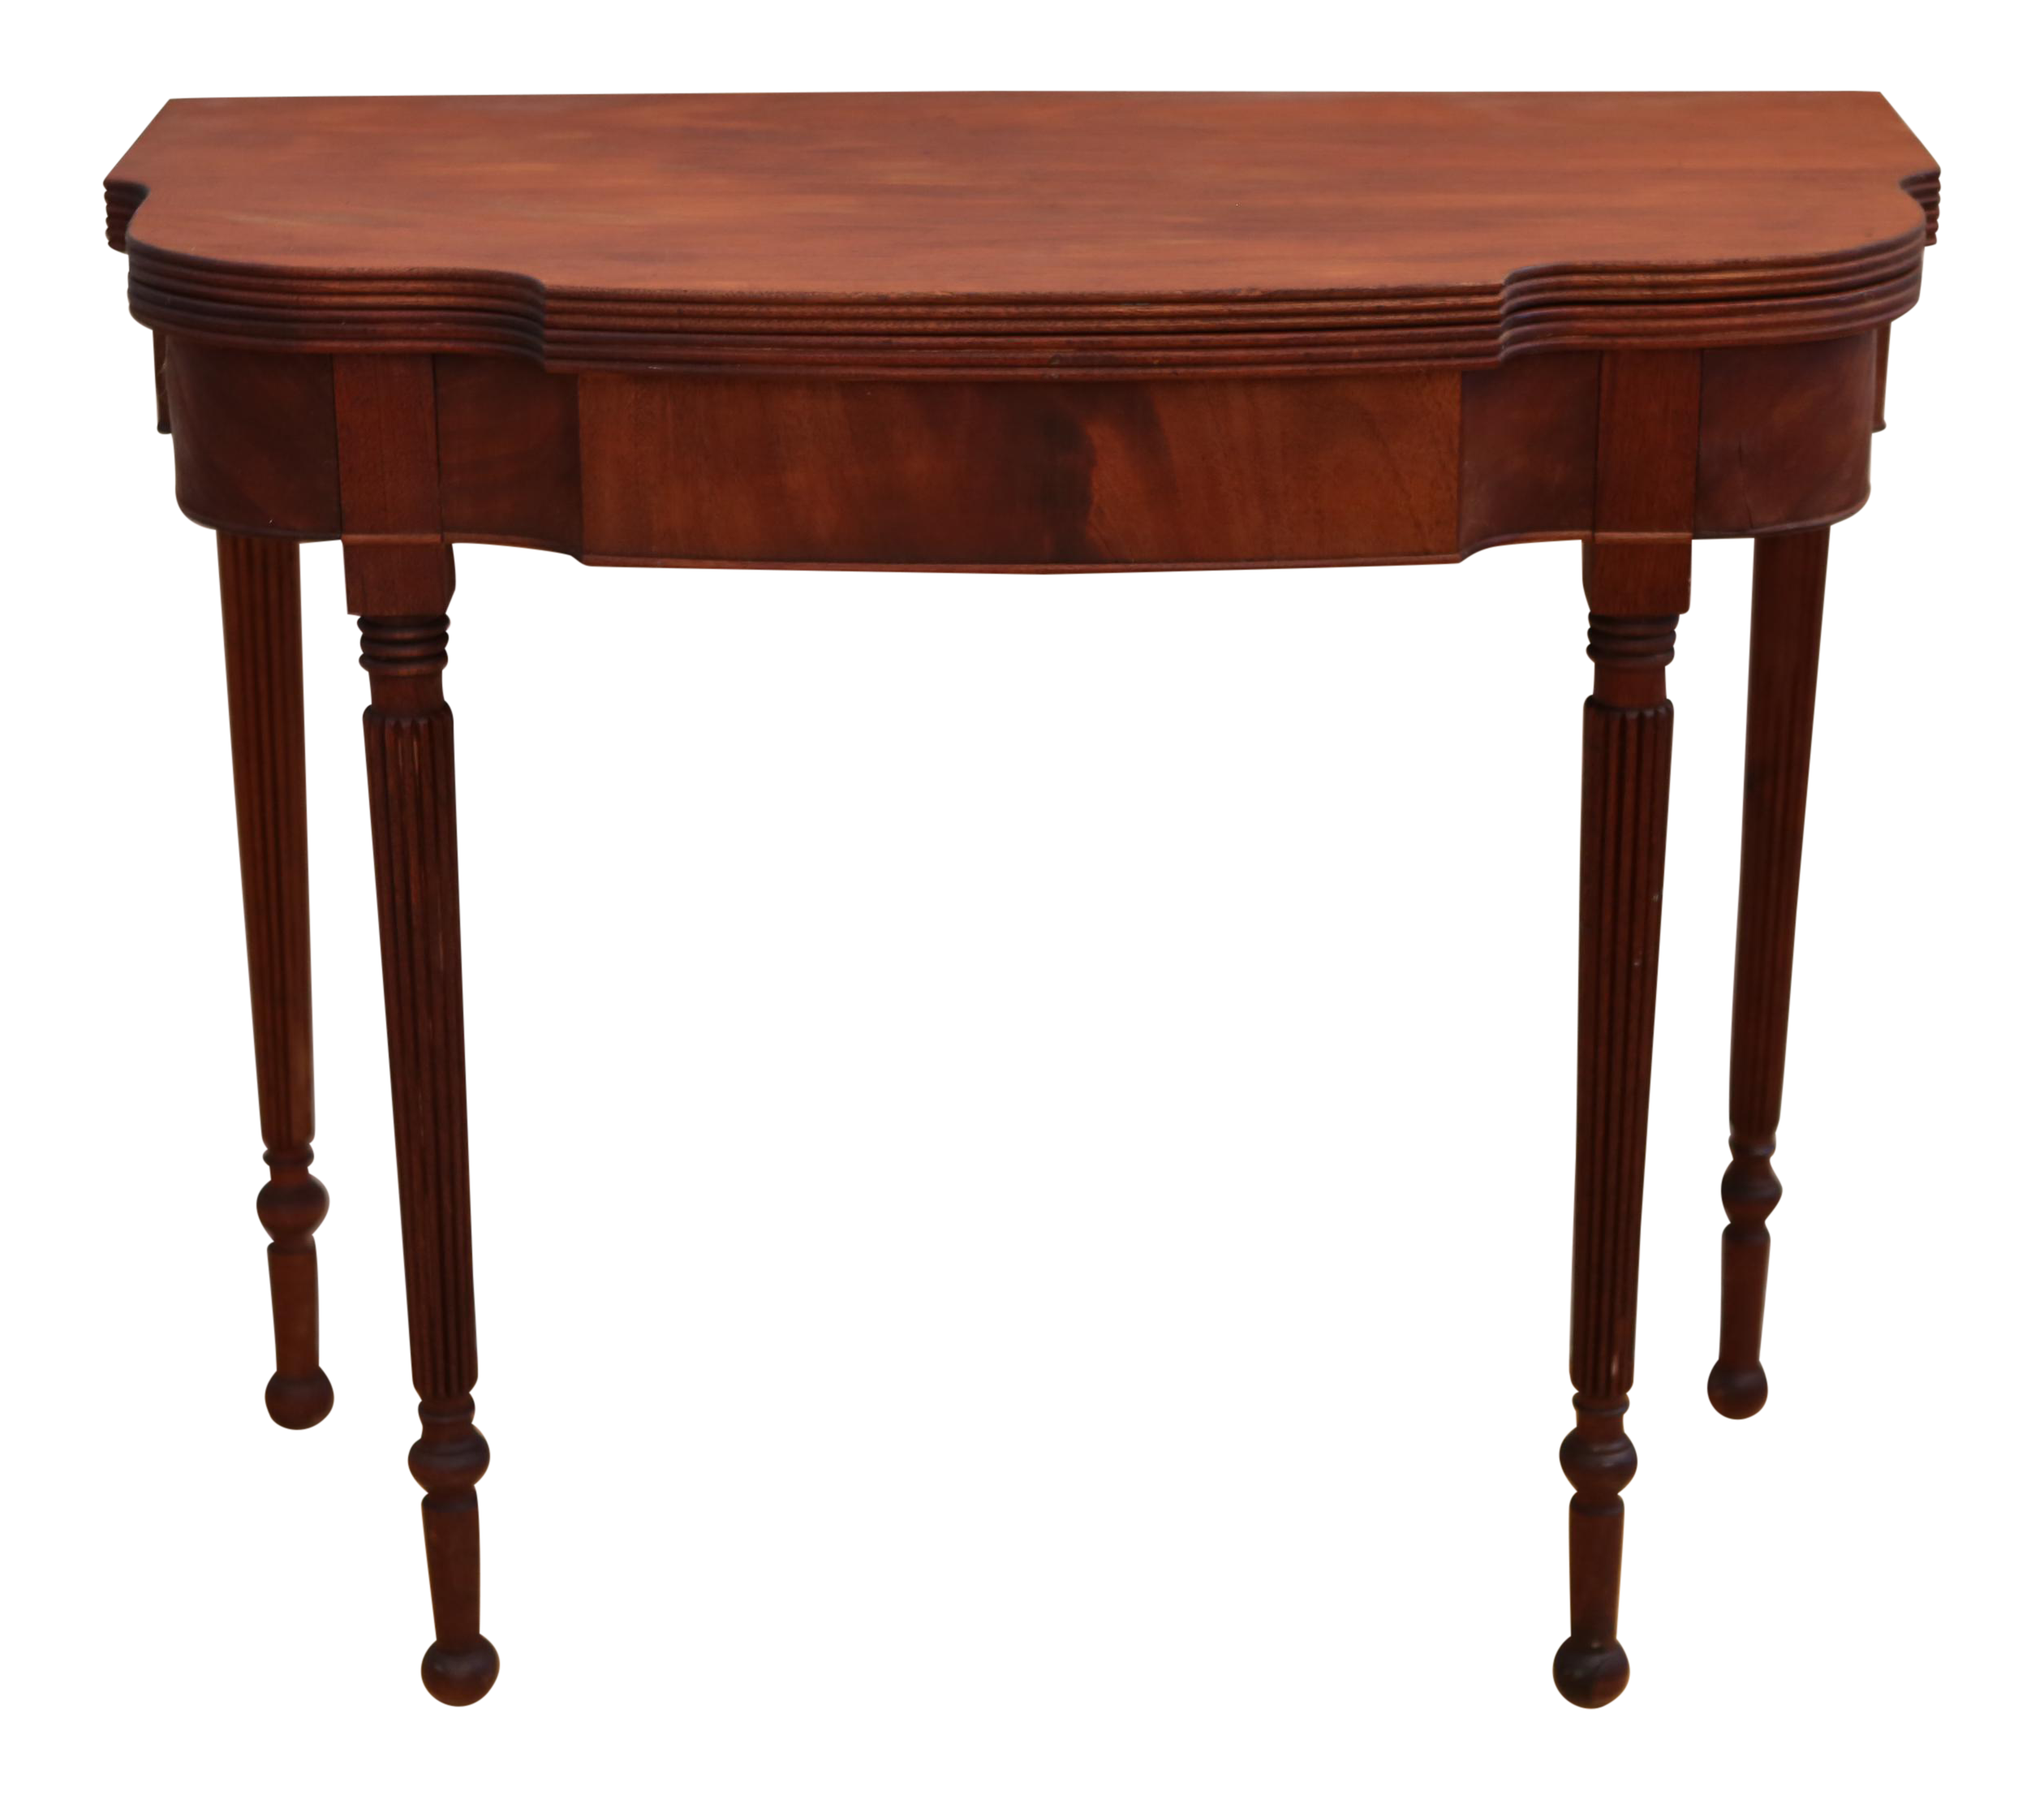 2 in 1 vintage convertible table console to dining table chairish. Black Bedroom Furniture Sets. Home Design Ideas